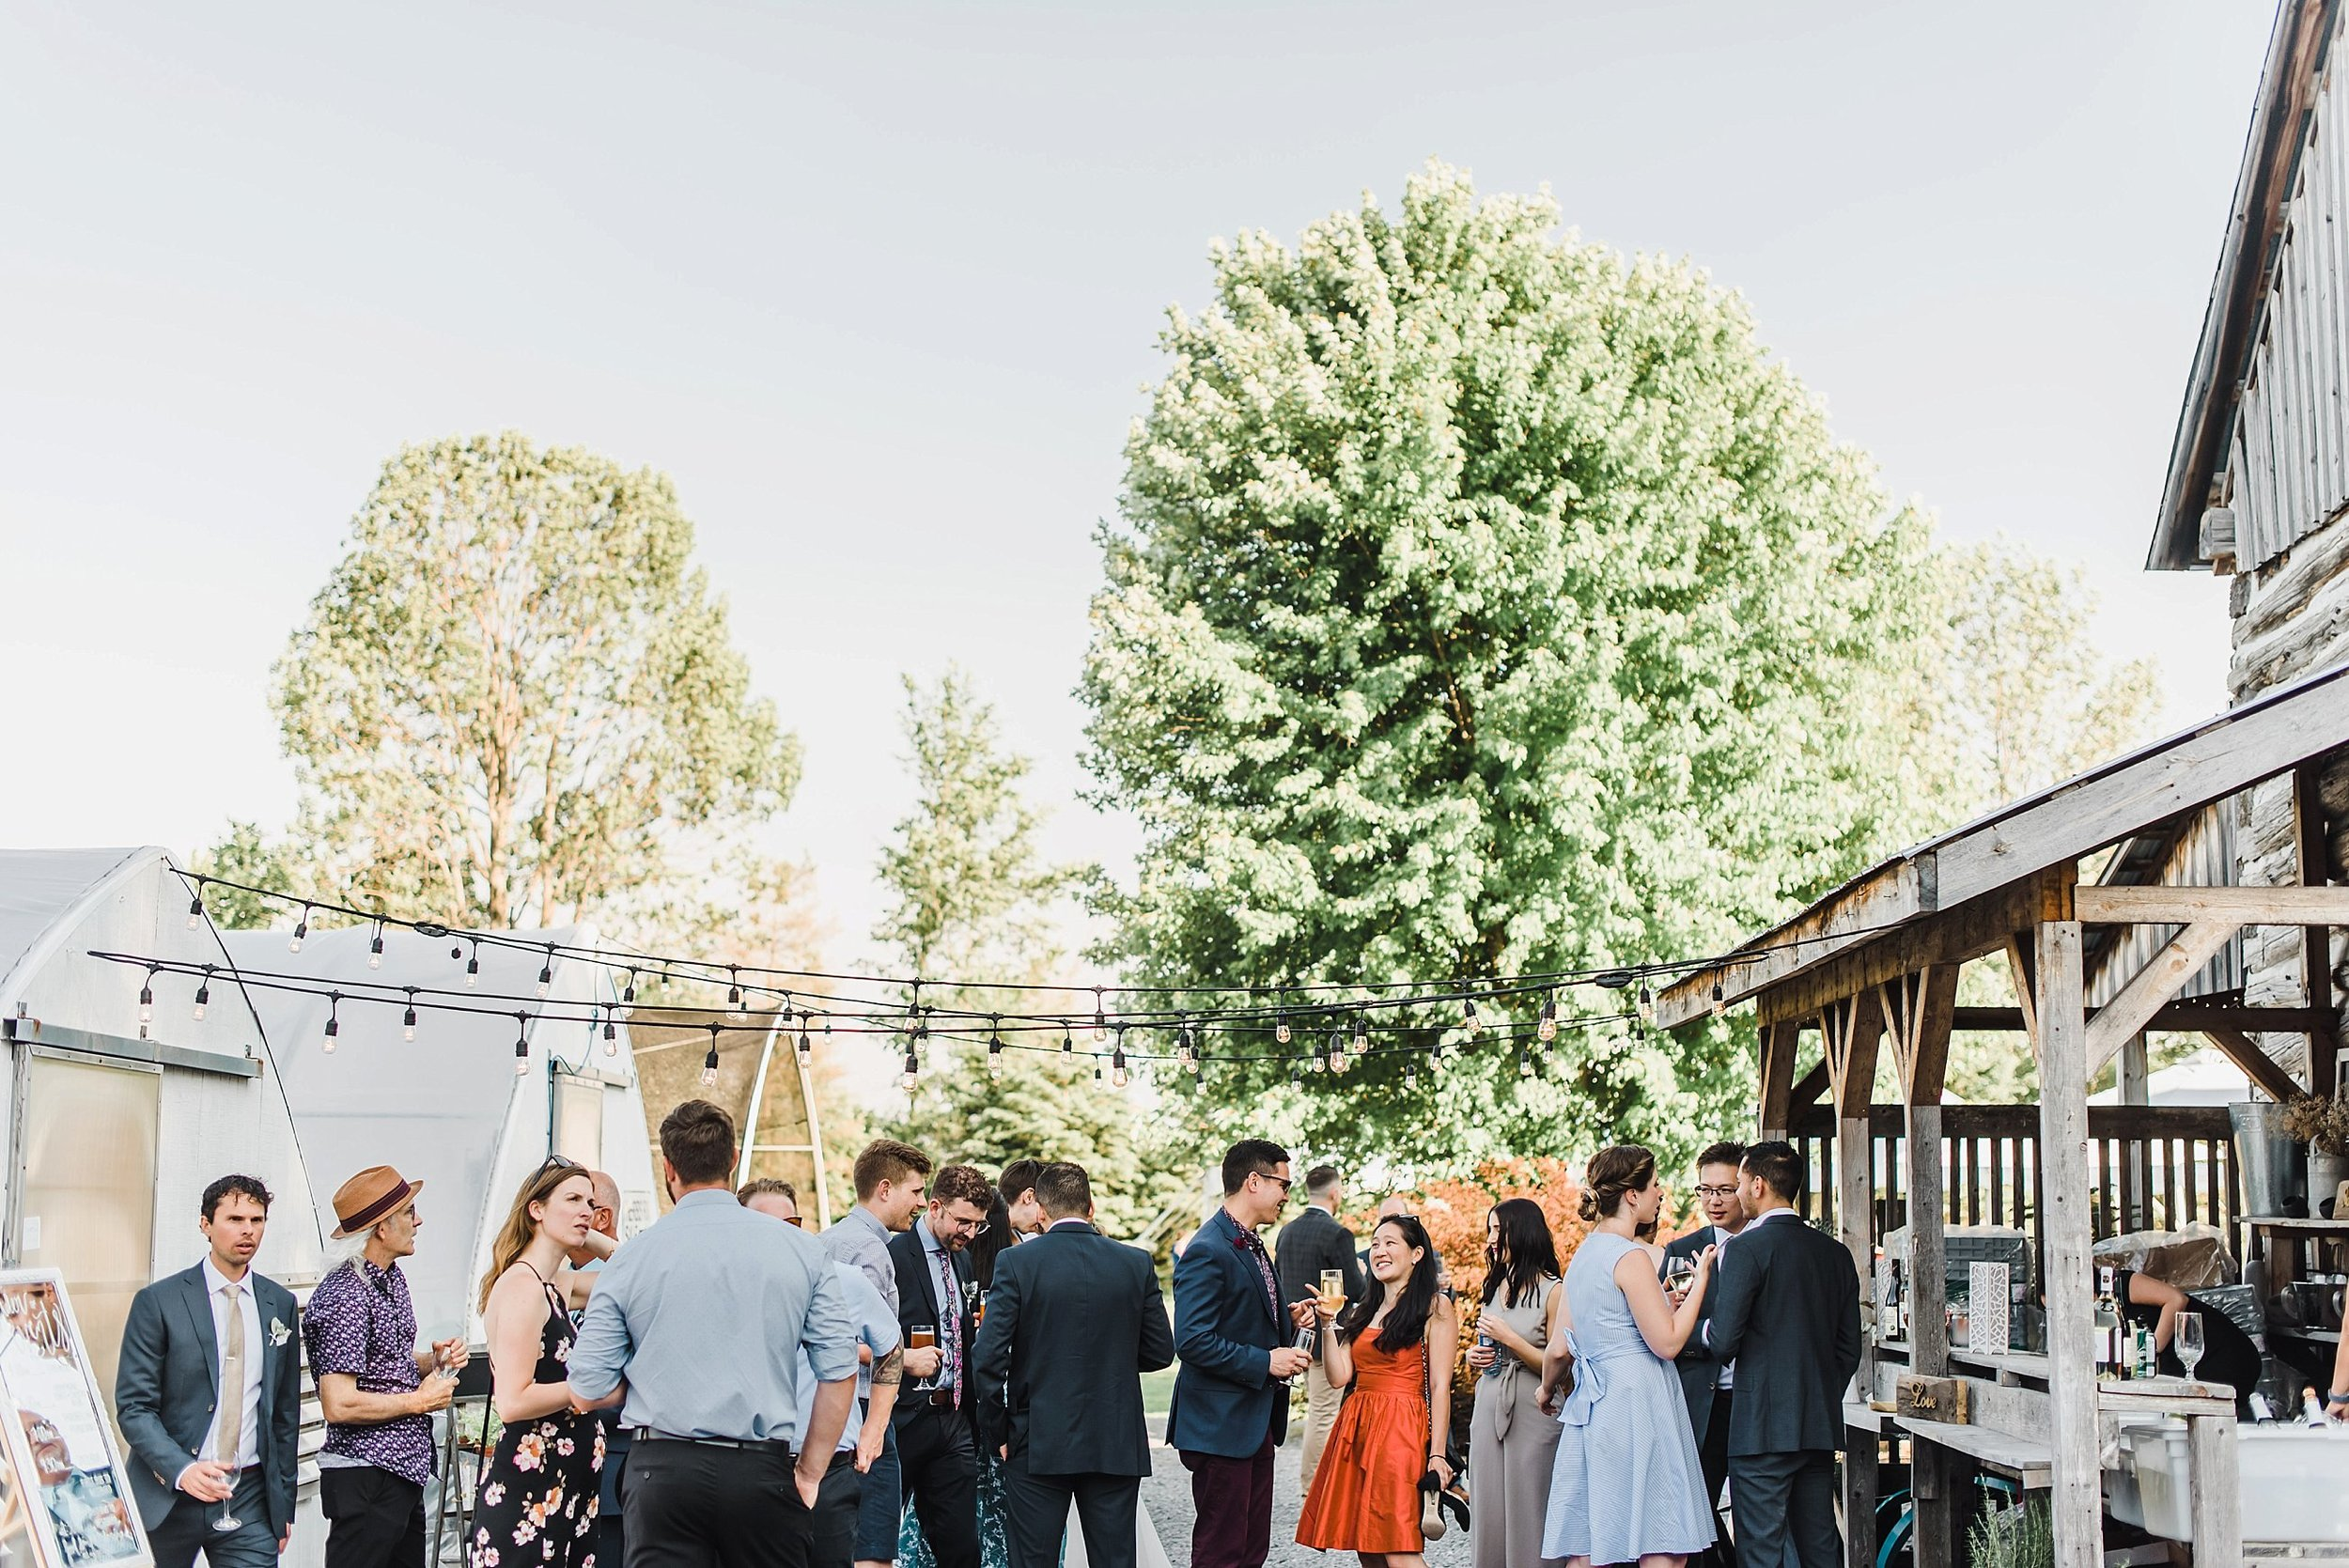 Becca and Kendrick wanted a relaxed and fun ambiance at their wedding and that's exactly what they achieved. Live music played while everyone enjoyed their drinks and cocktail-style food from Les Flavoureux.